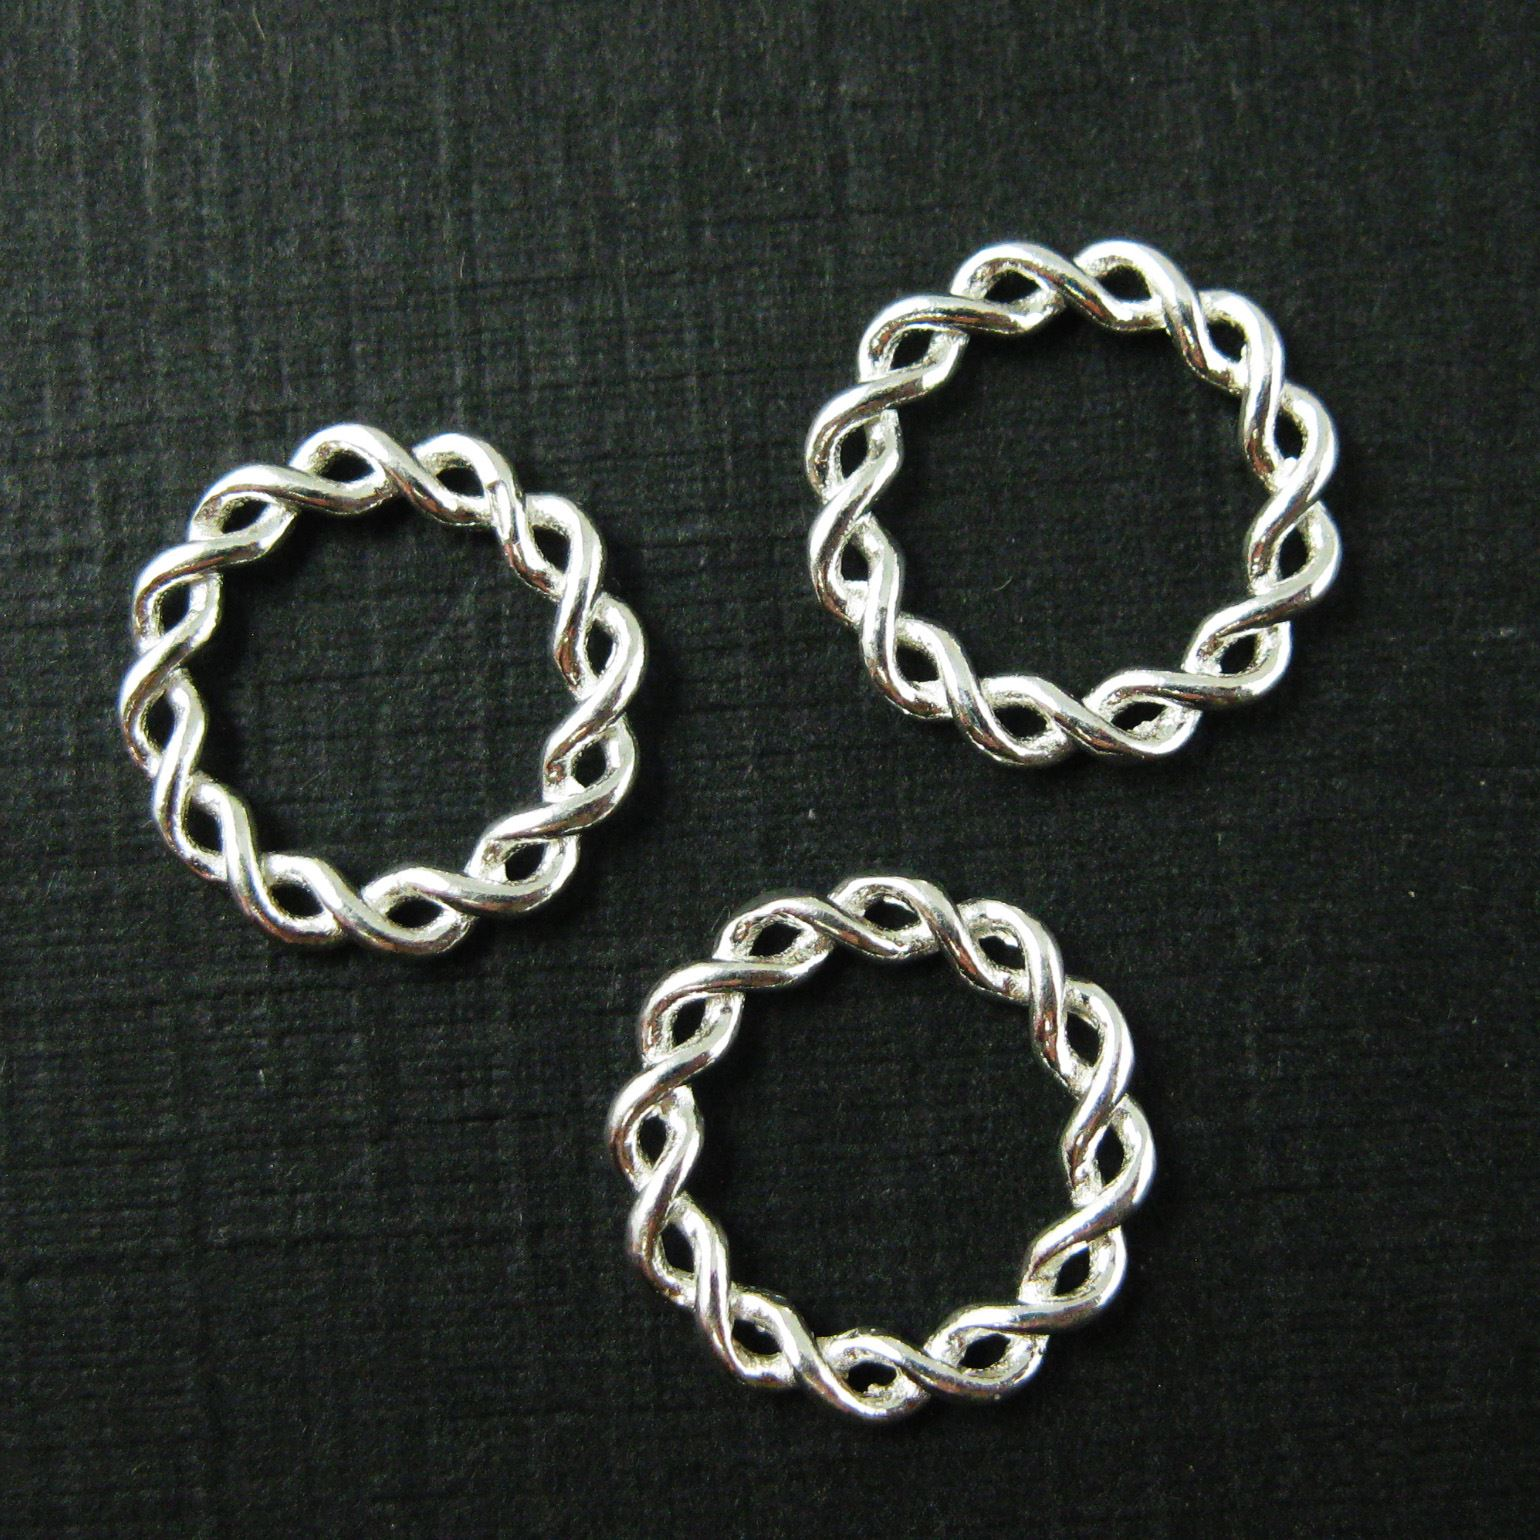 925 Sterling Silver Charm-Twisted Closed Connector Ring - Silver Twisted Ring Link Charm Pendant-11.5mm ( 3 pcs)